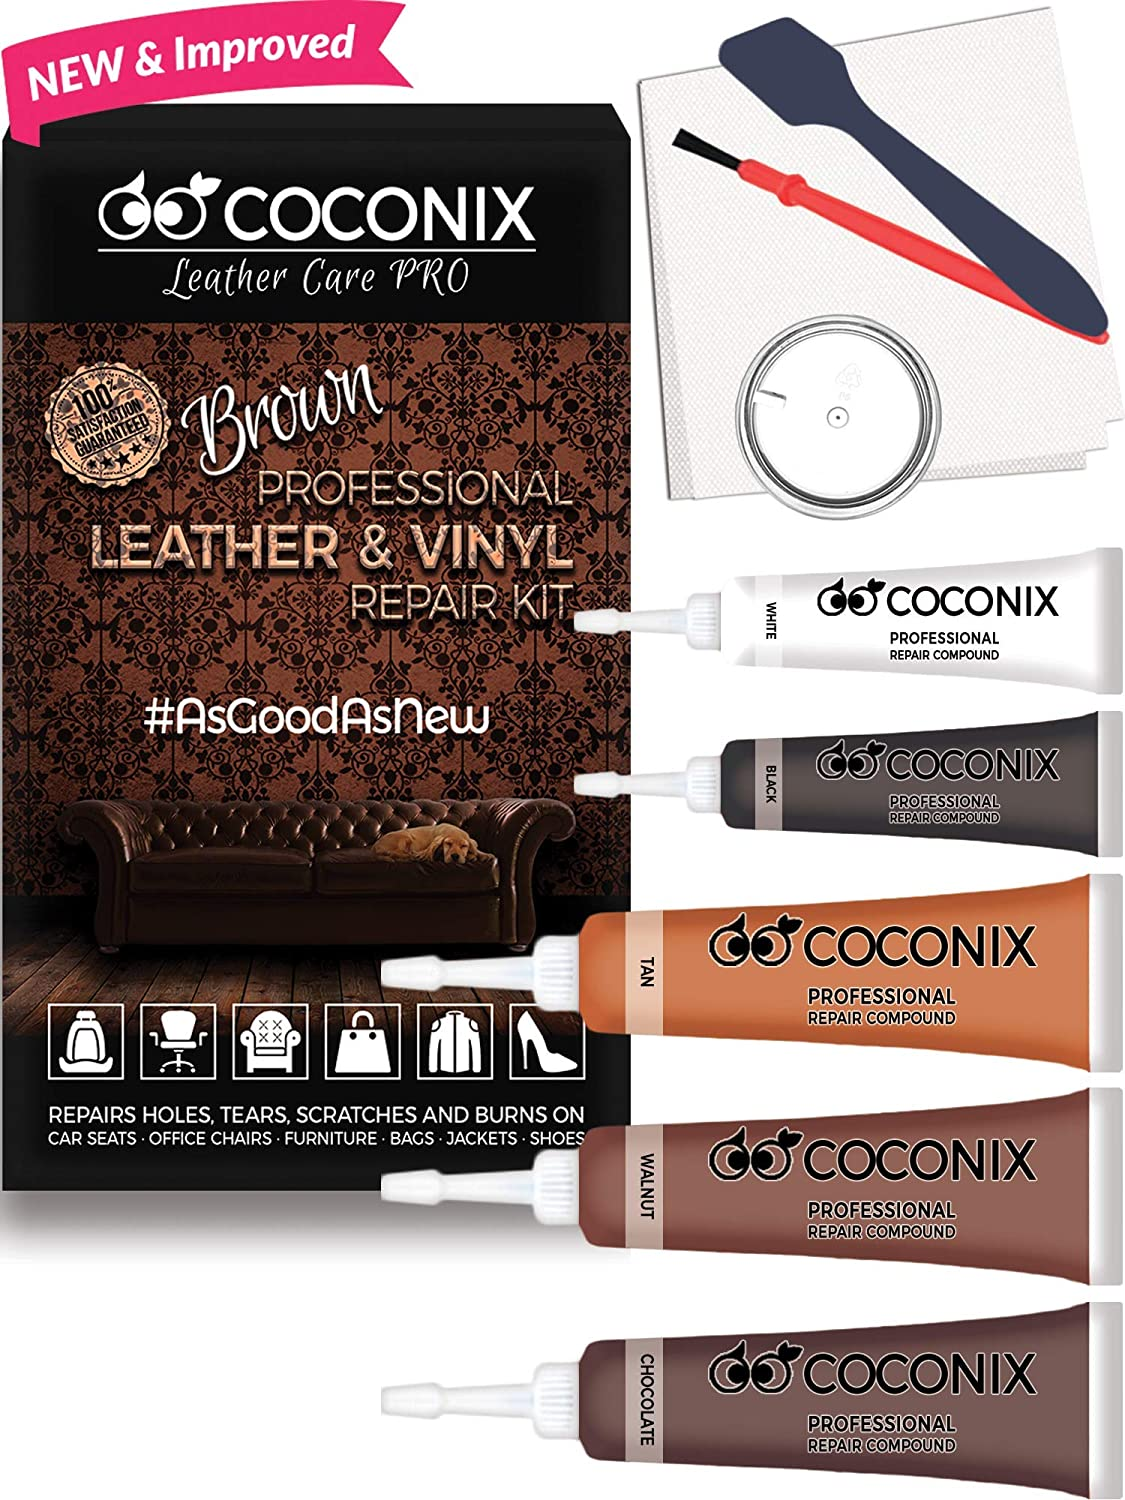 Coconix Brown Leather Repair Kits For Couches - Vinyl & Upholstery Repair Kit For Car Seats, Sofa & Furniture - Liquid Scratch Filler Formula Repairs Couch Tears, Pet Marks, Cat Scratches & Burn Holes